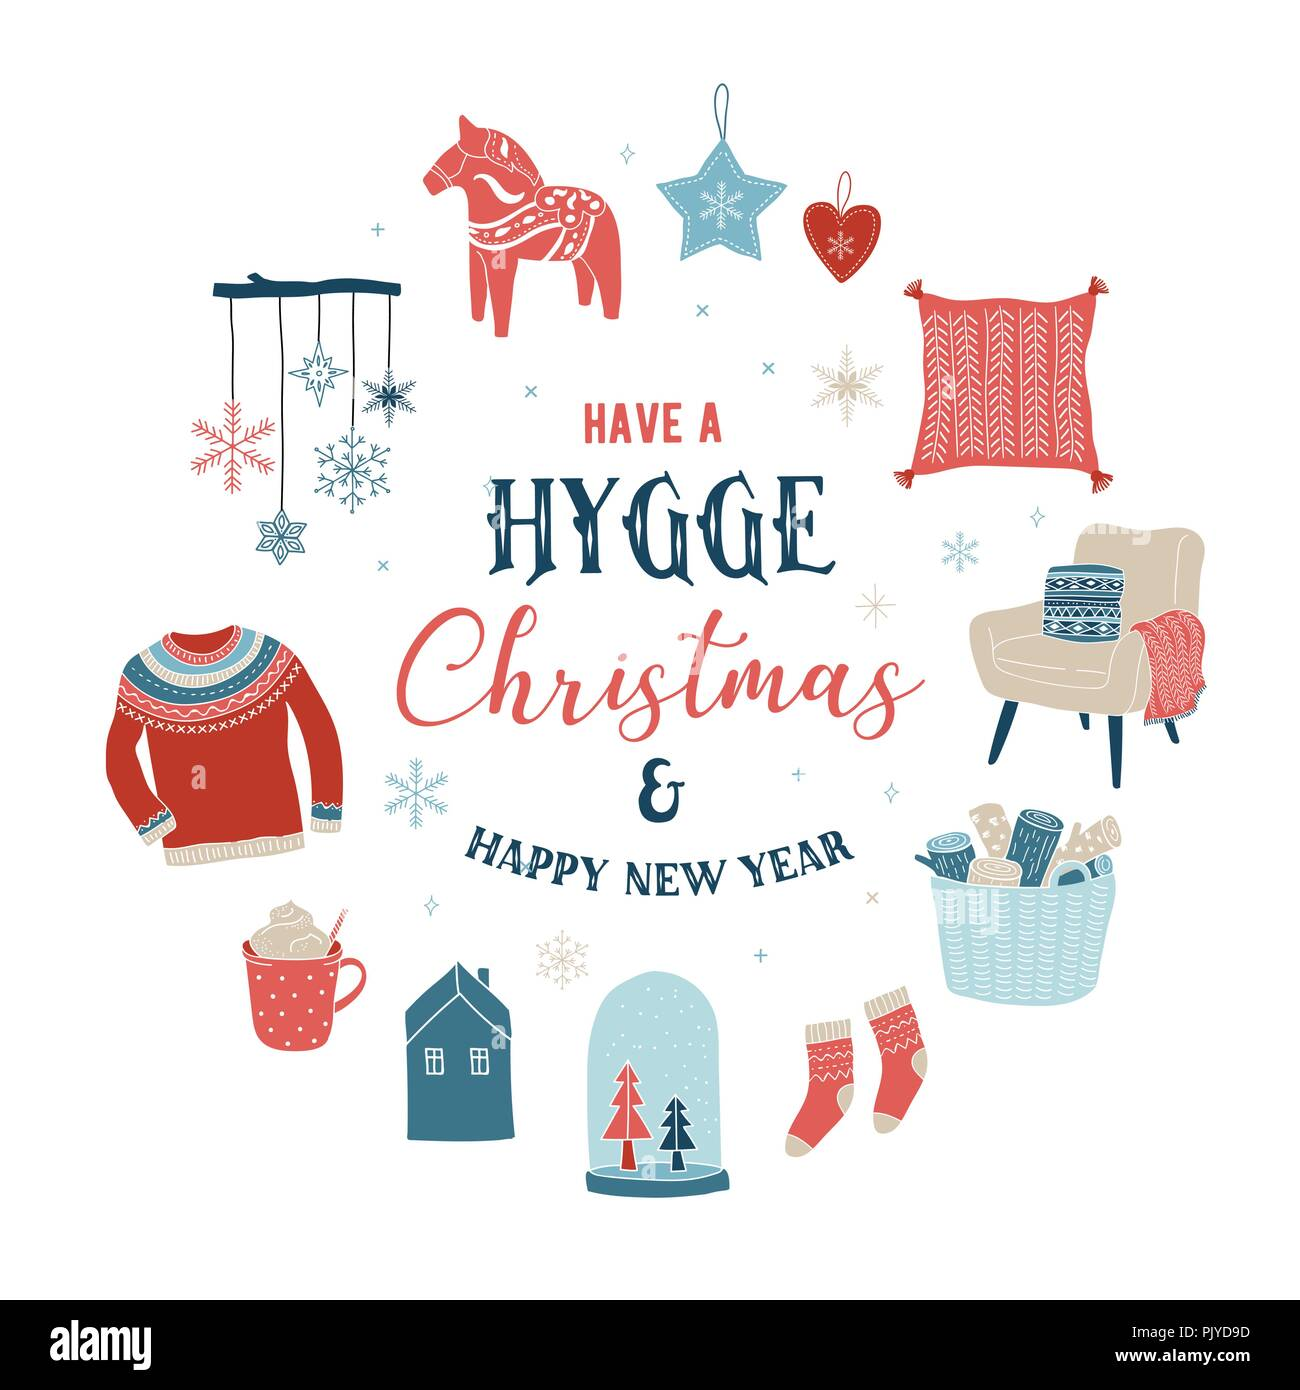 Hygge winter elements and concept design, Merry Christmas card, banner, background - Stock Image